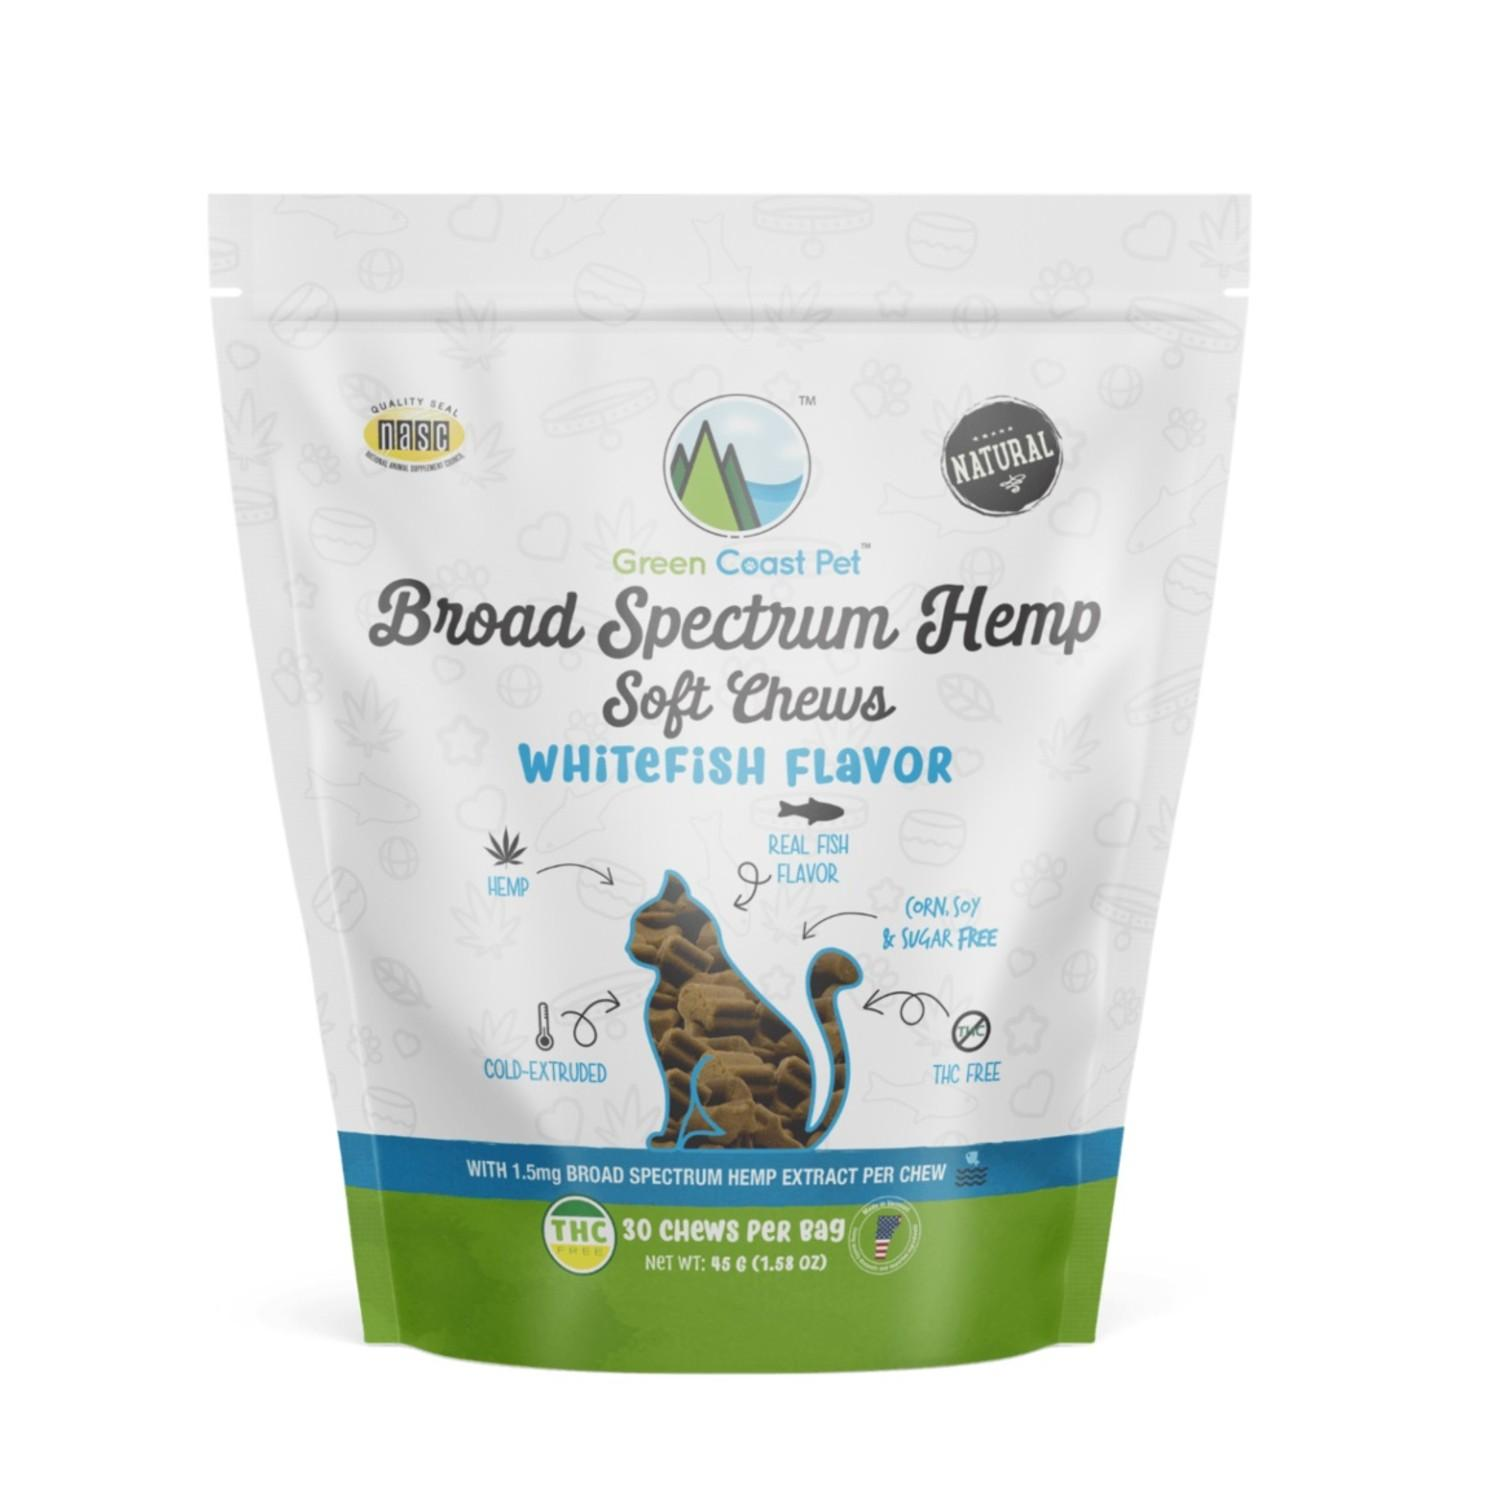 Green Coast Pet Broad Spectrum Hemp Cat Soft Chews - Whitefish